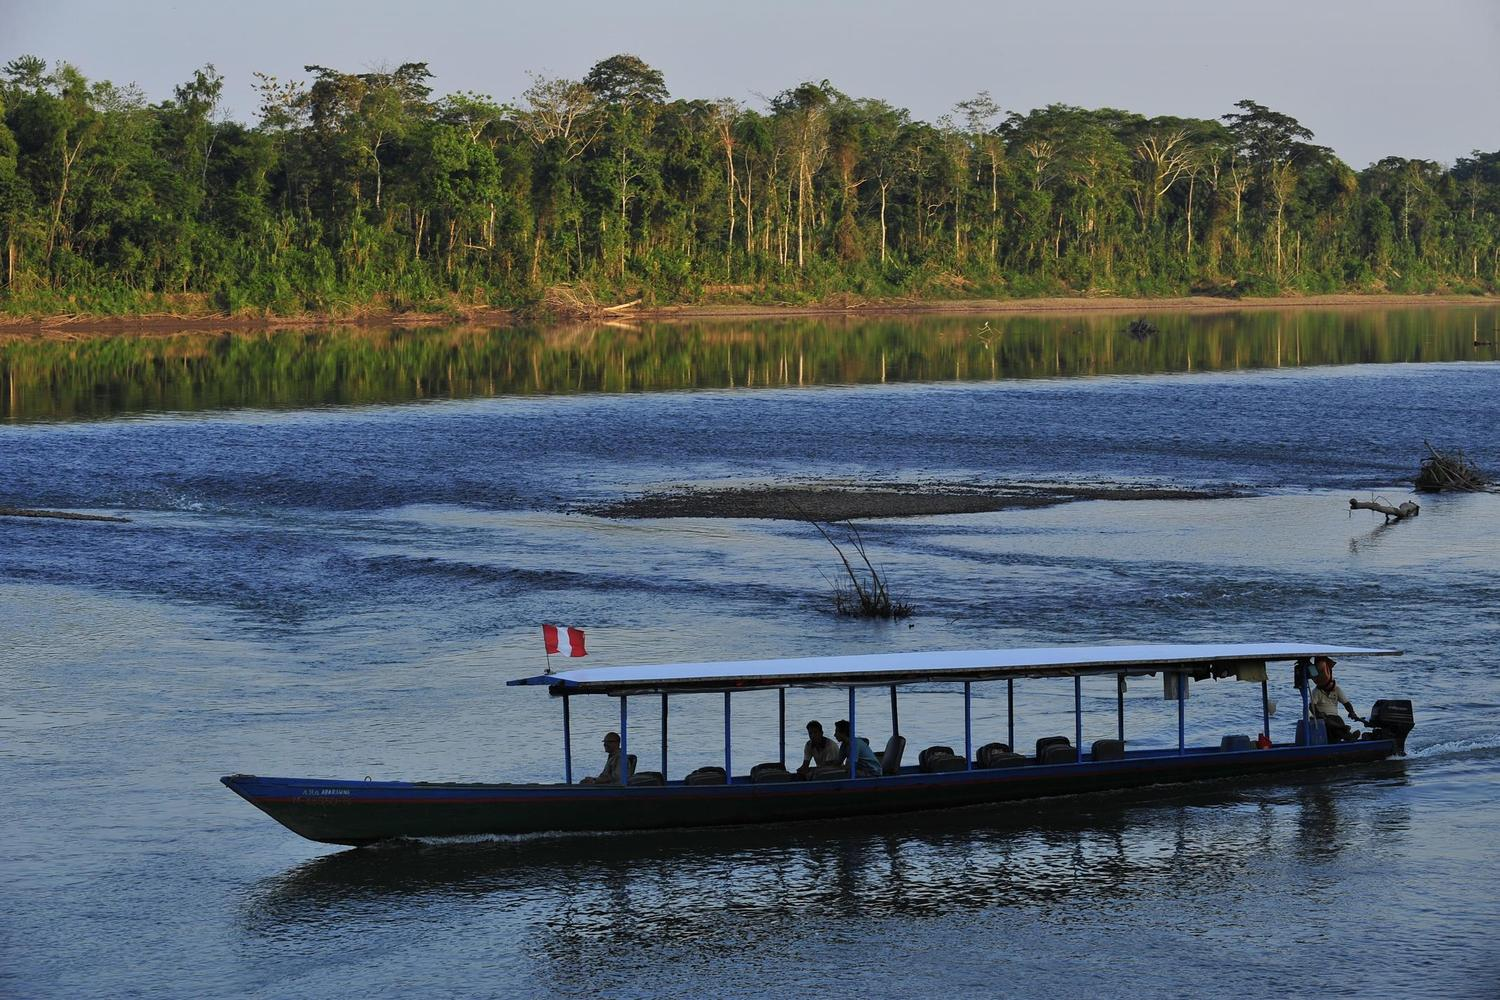 Travelling on the Tambopata River